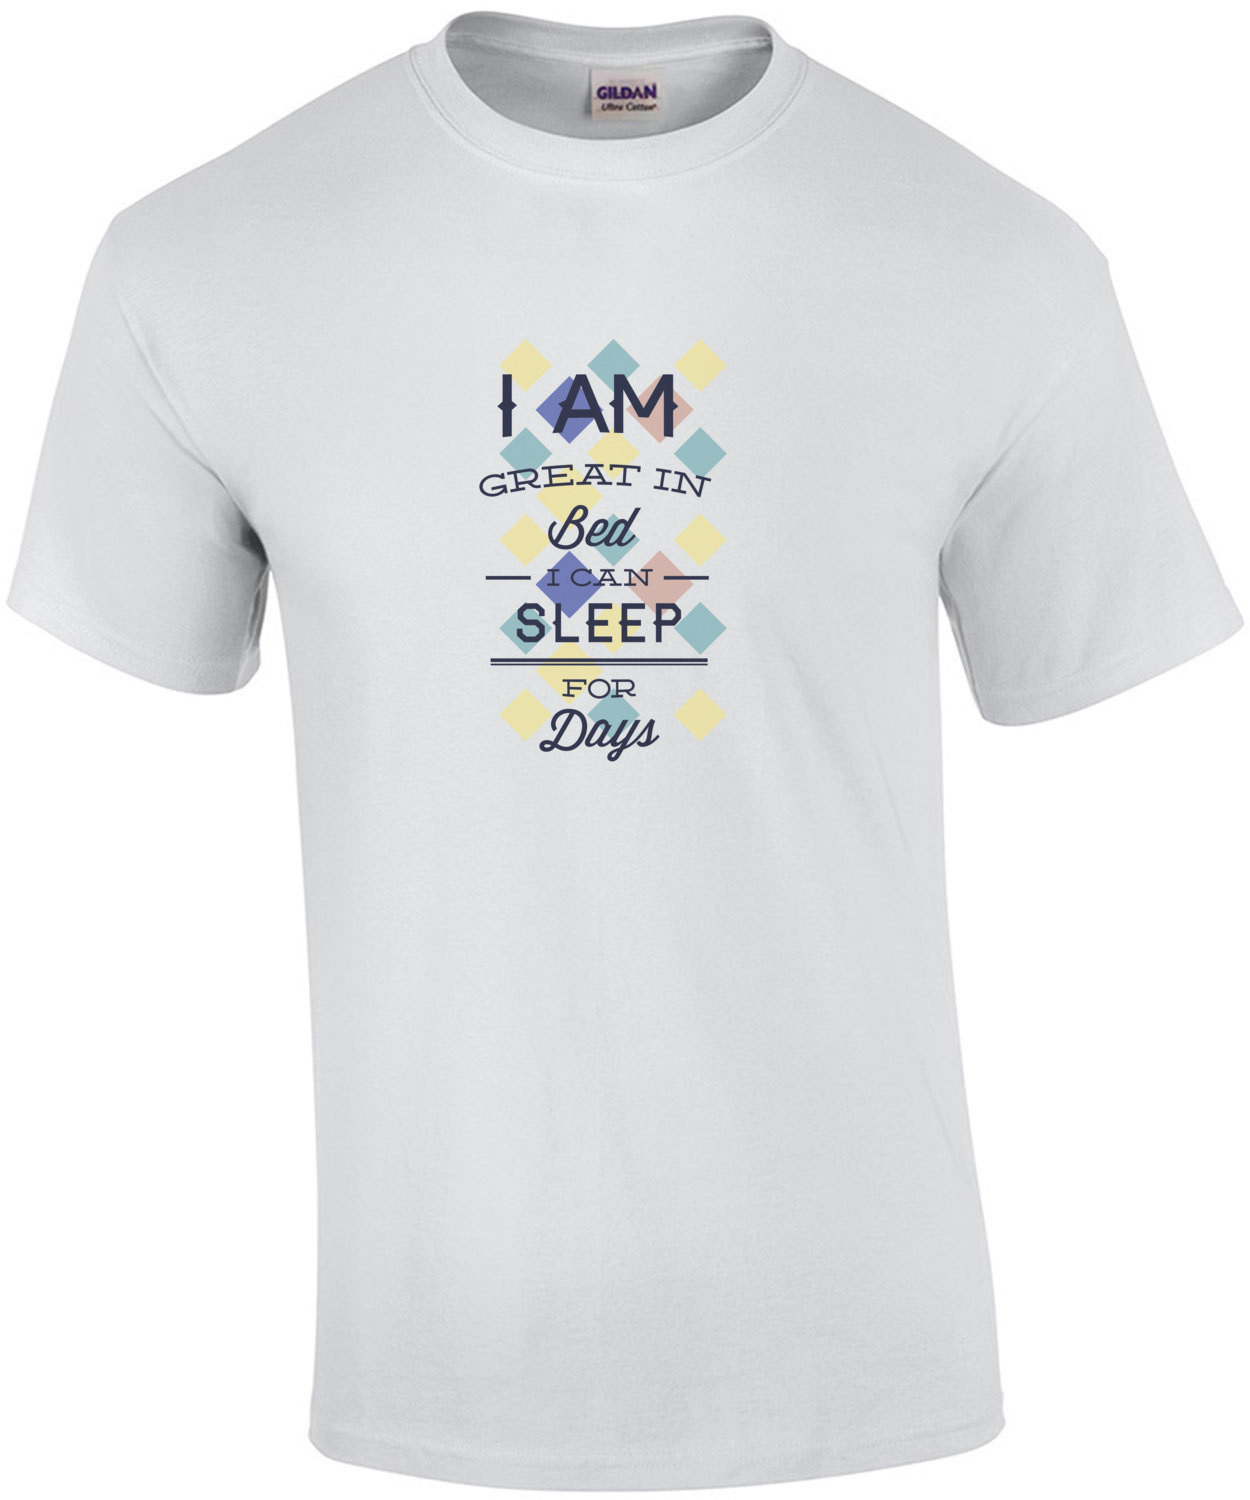 I Am Great In Bed I Can Sleep For Days T-Shirt